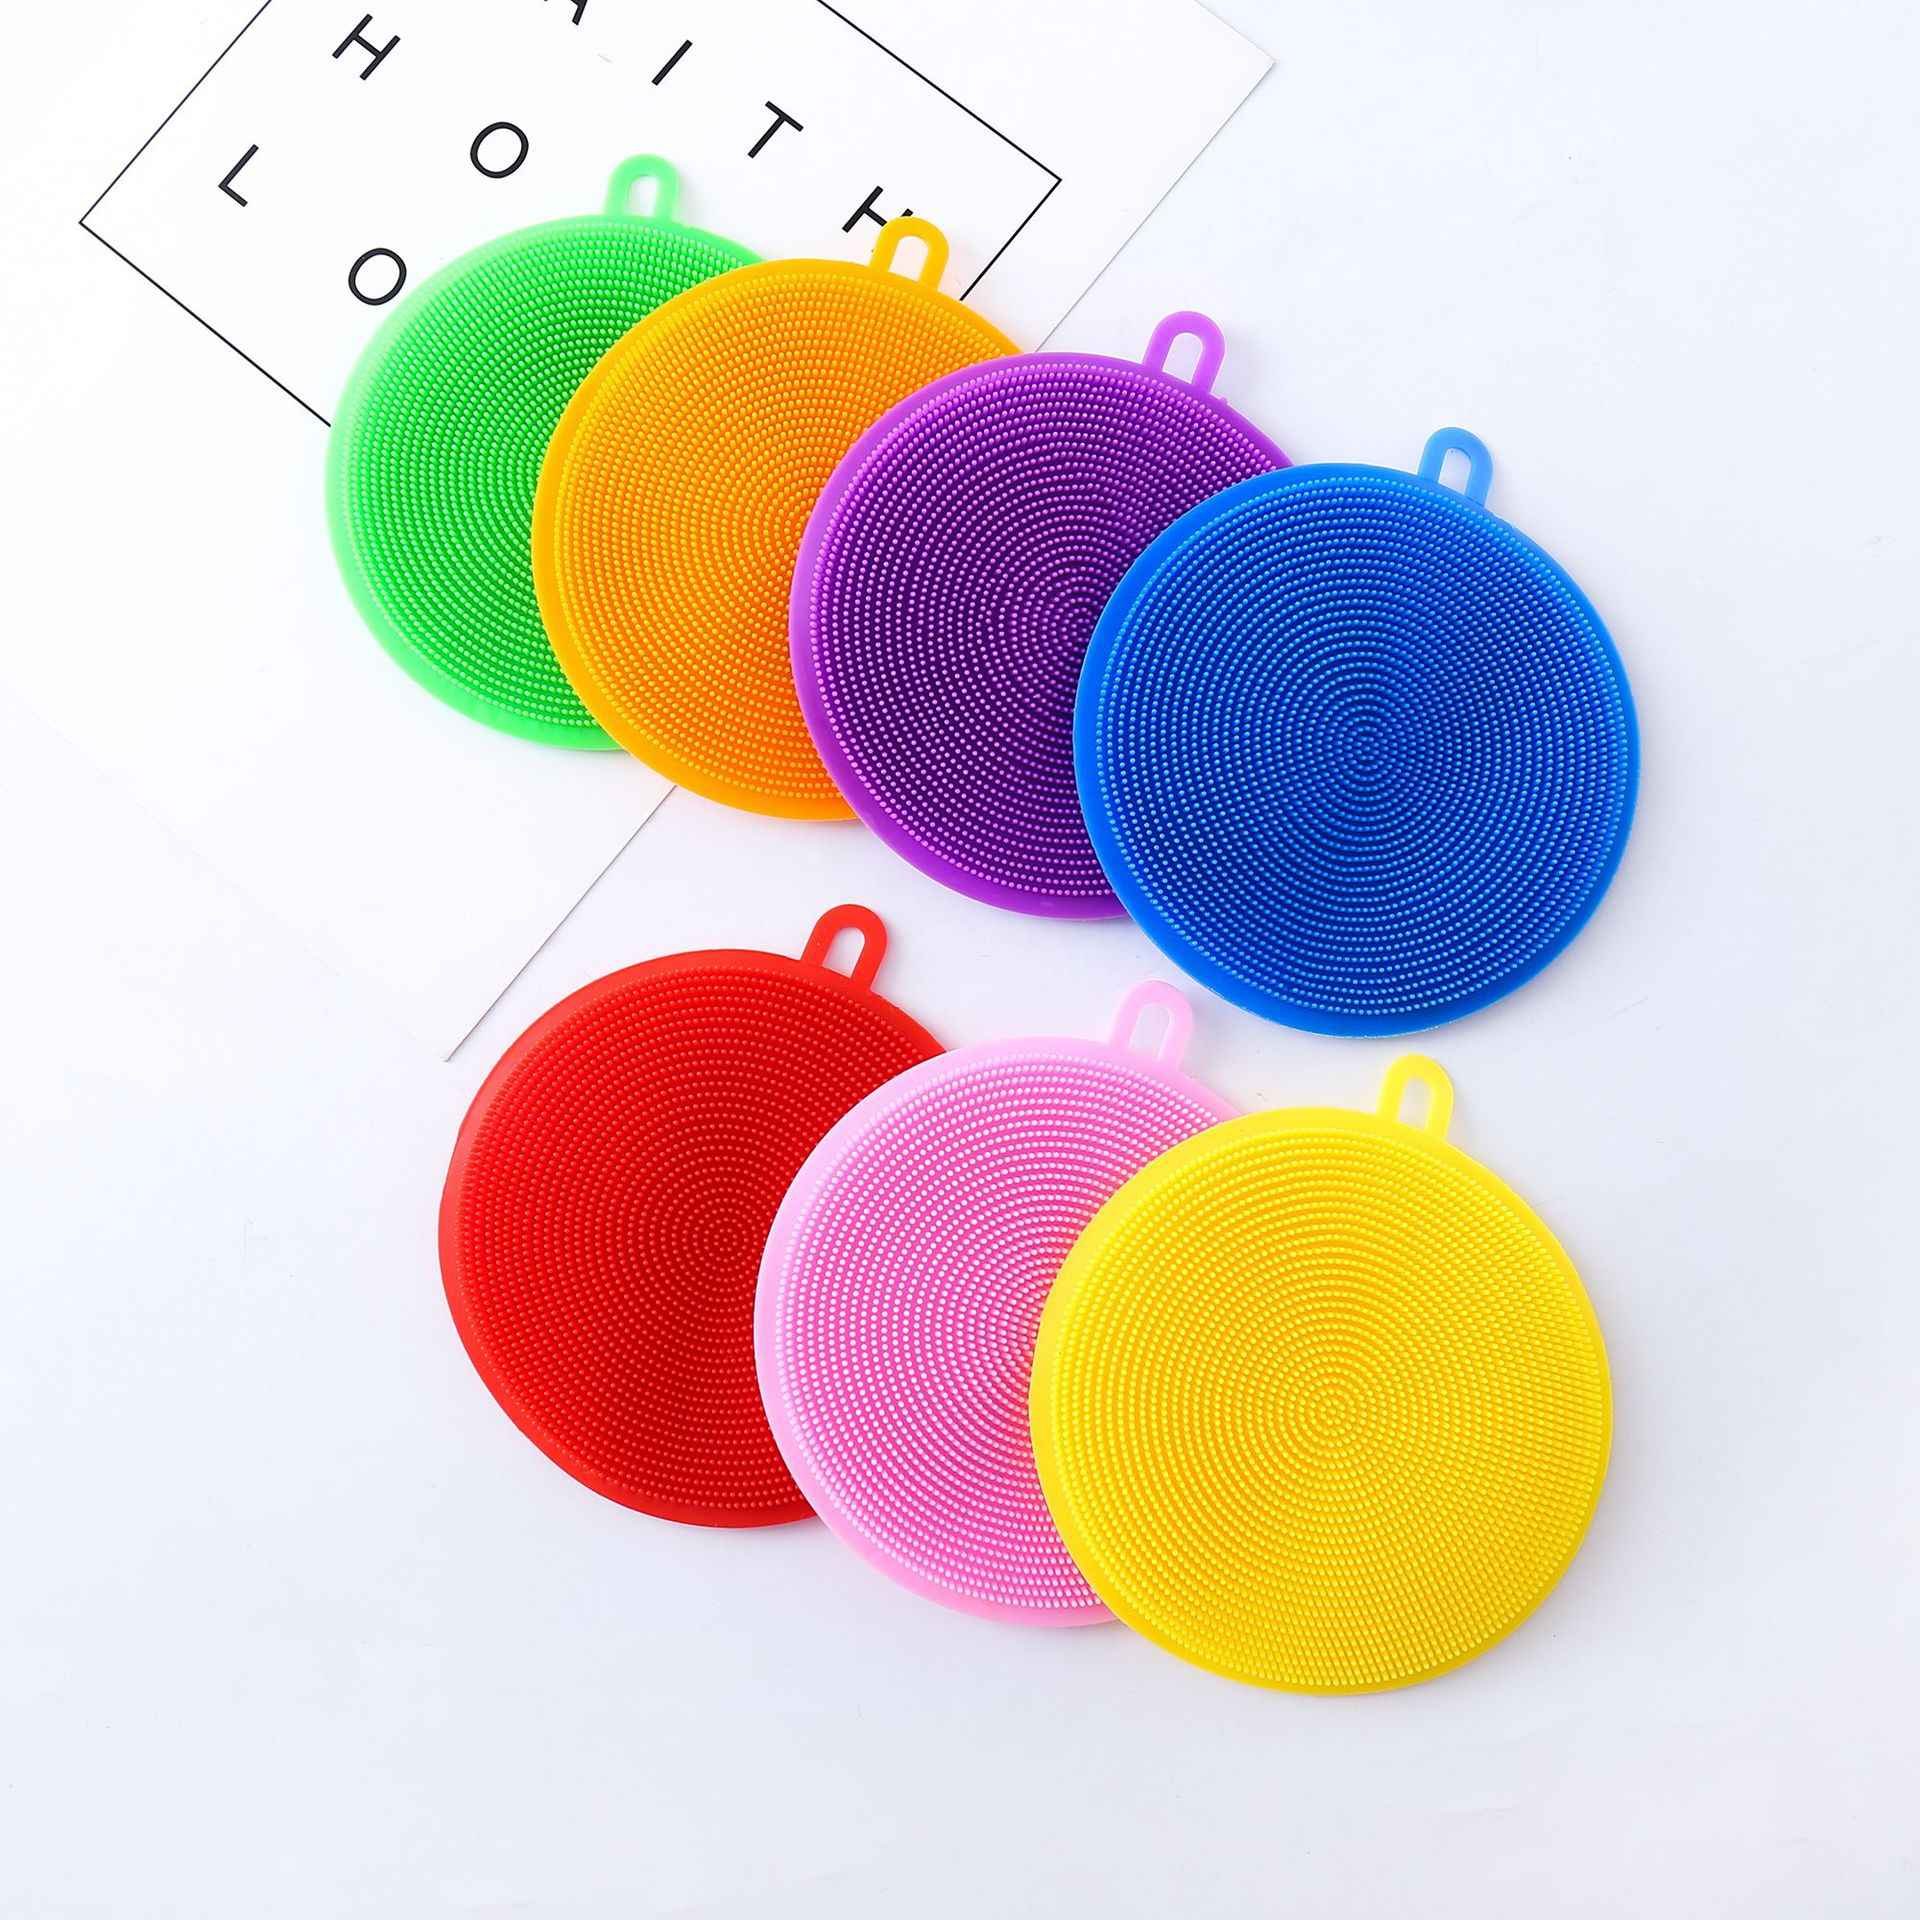 Magic Cleaning Brushes Silicone Dish Bowl Scouring Pads Pot Pan Easy to Clean Wash Brushes Cleaner Sponges Dish Rags